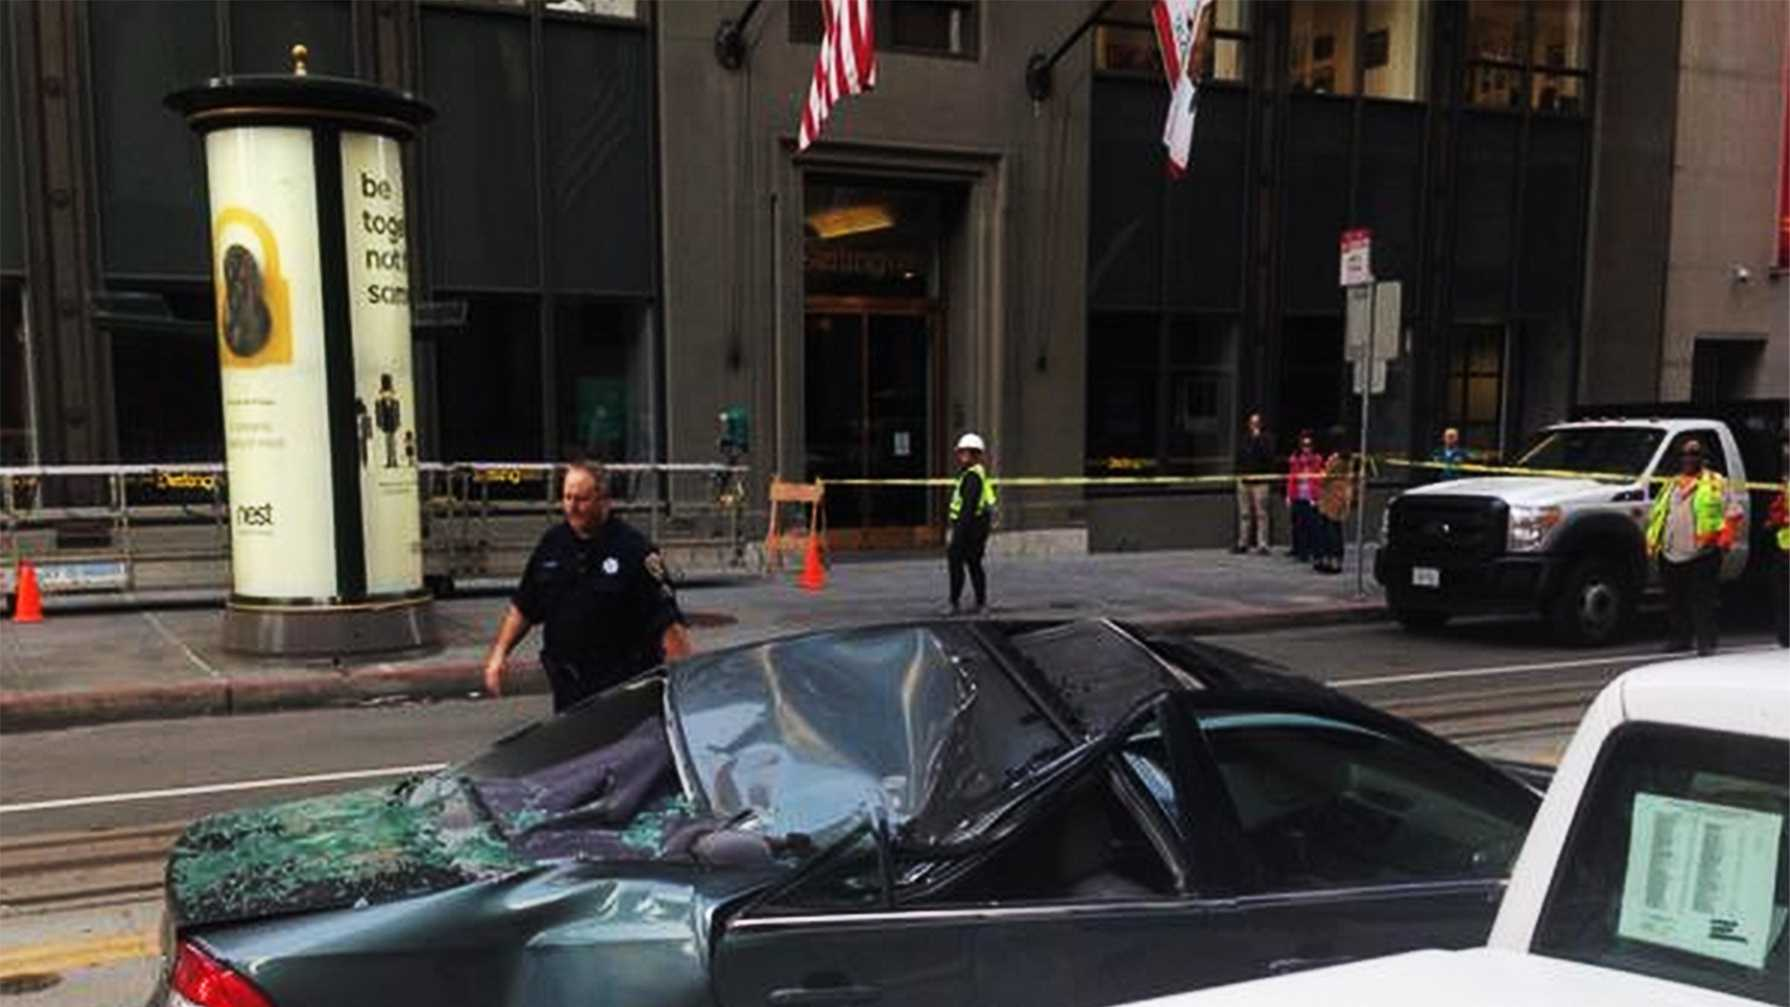 A window washer landed on this car in San Francisco.  (Nov. 21, 2014)